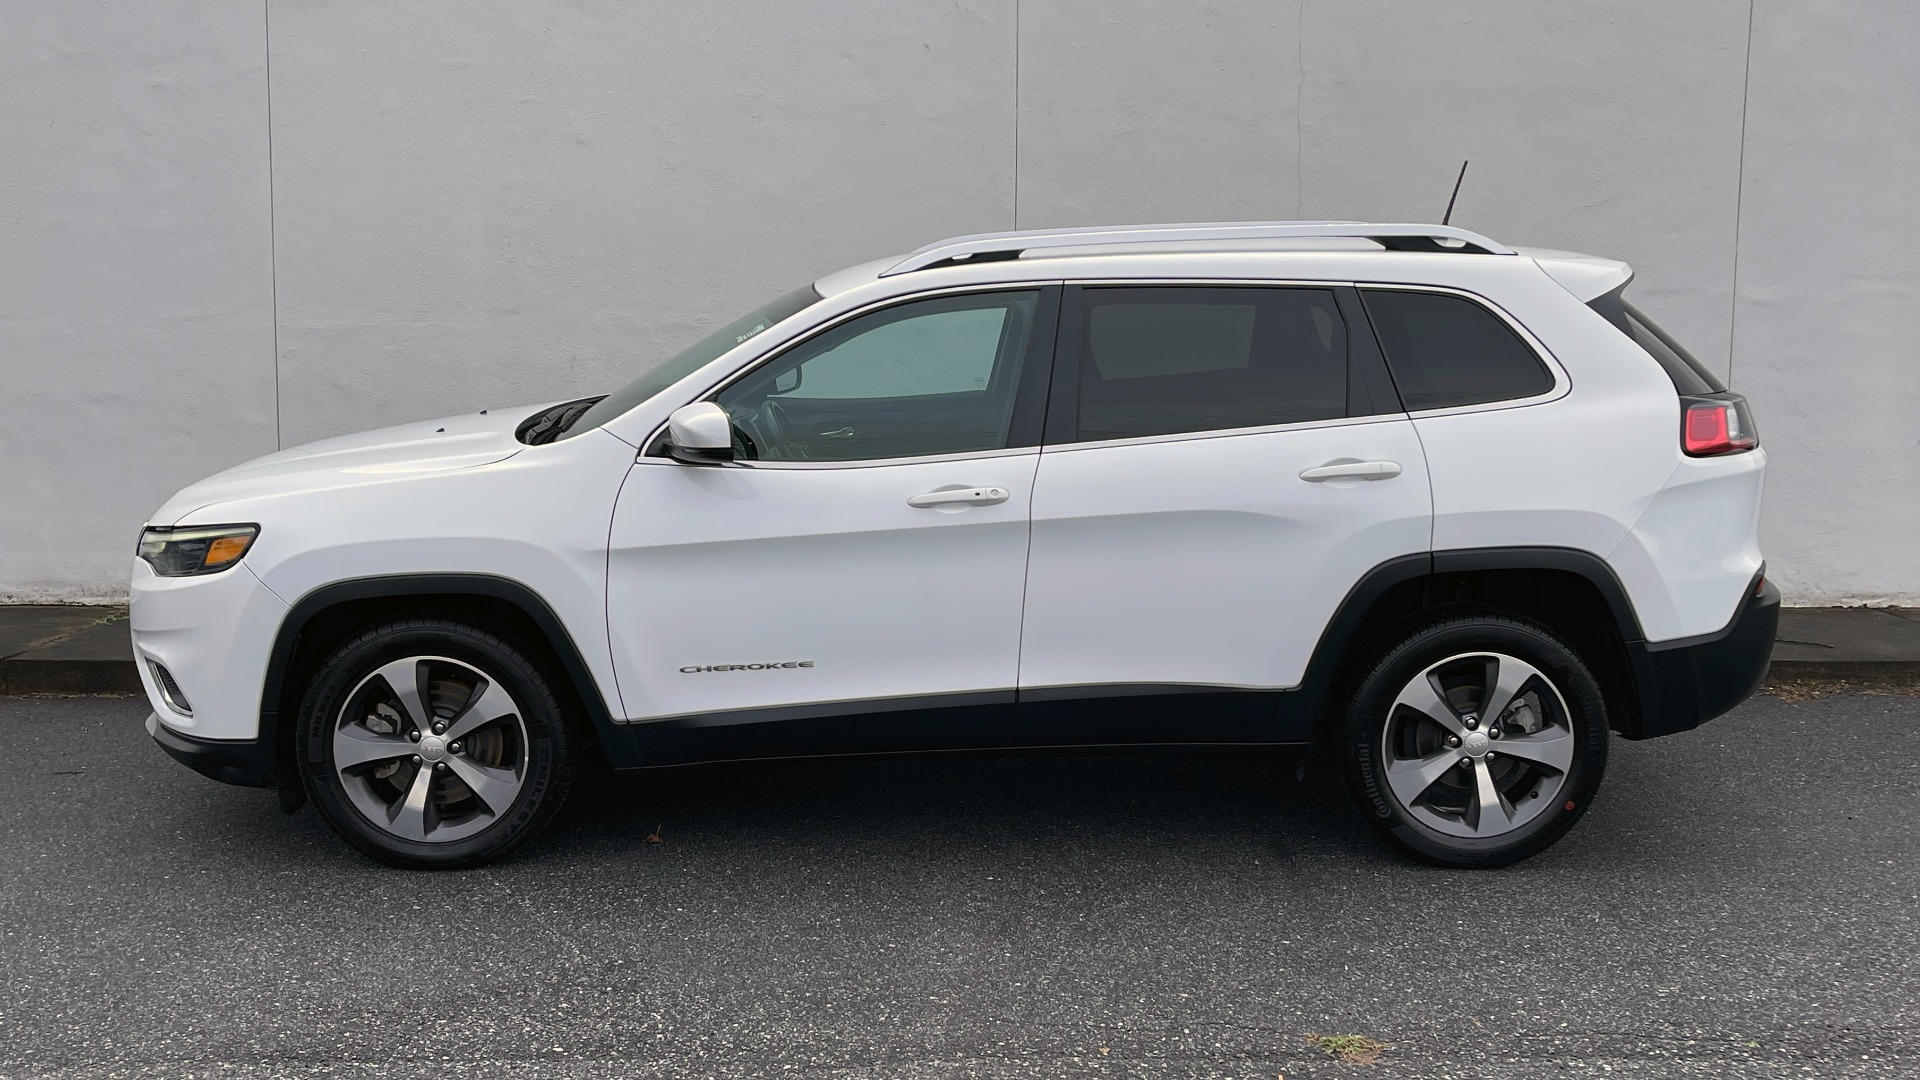 Used 2019 Jeep CHEROKEE LIMITED 2.4L / FWD / APPLE CARPLAY / KEYLESS-GO / REARVIEW for sale $24,395 at Formula Imports in Charlotte NC 28227 2